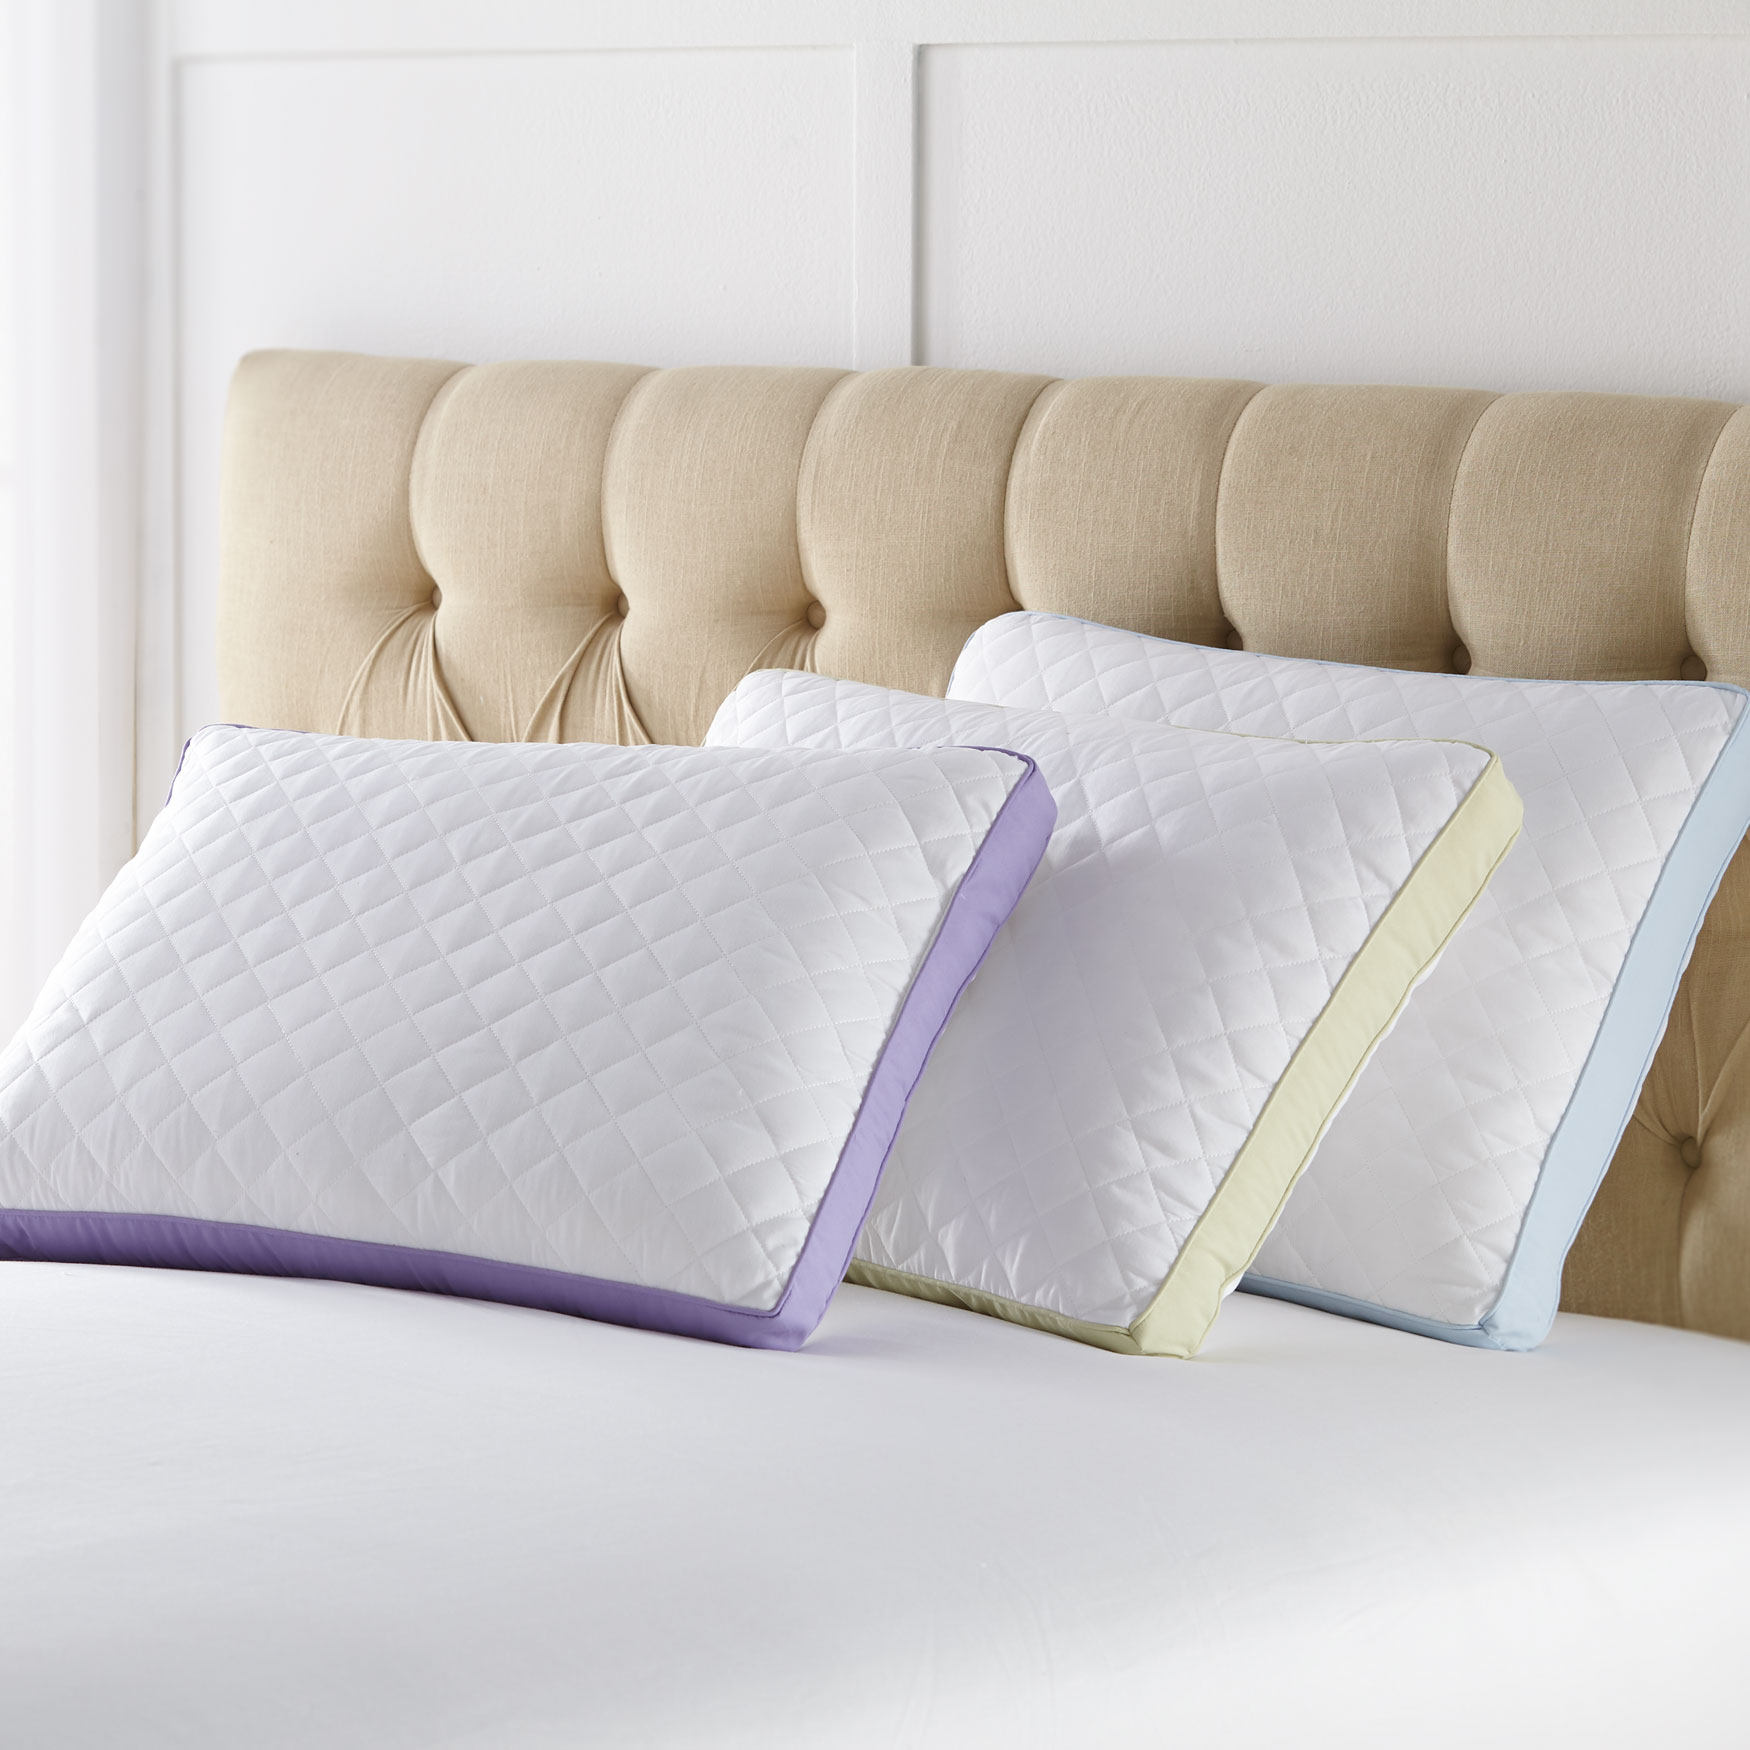 Back Sleeper Gusseted Density 2-Pack Pillows,